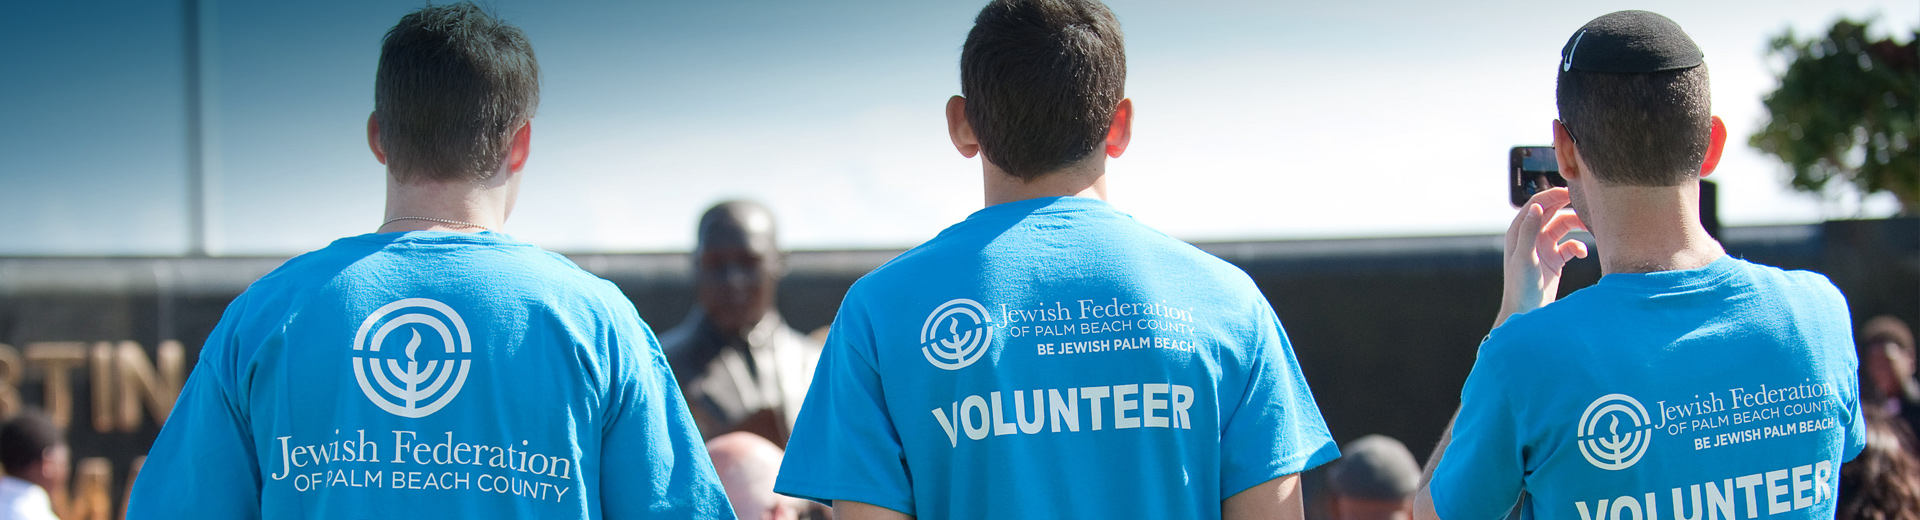 Jewish Federation Volunteer